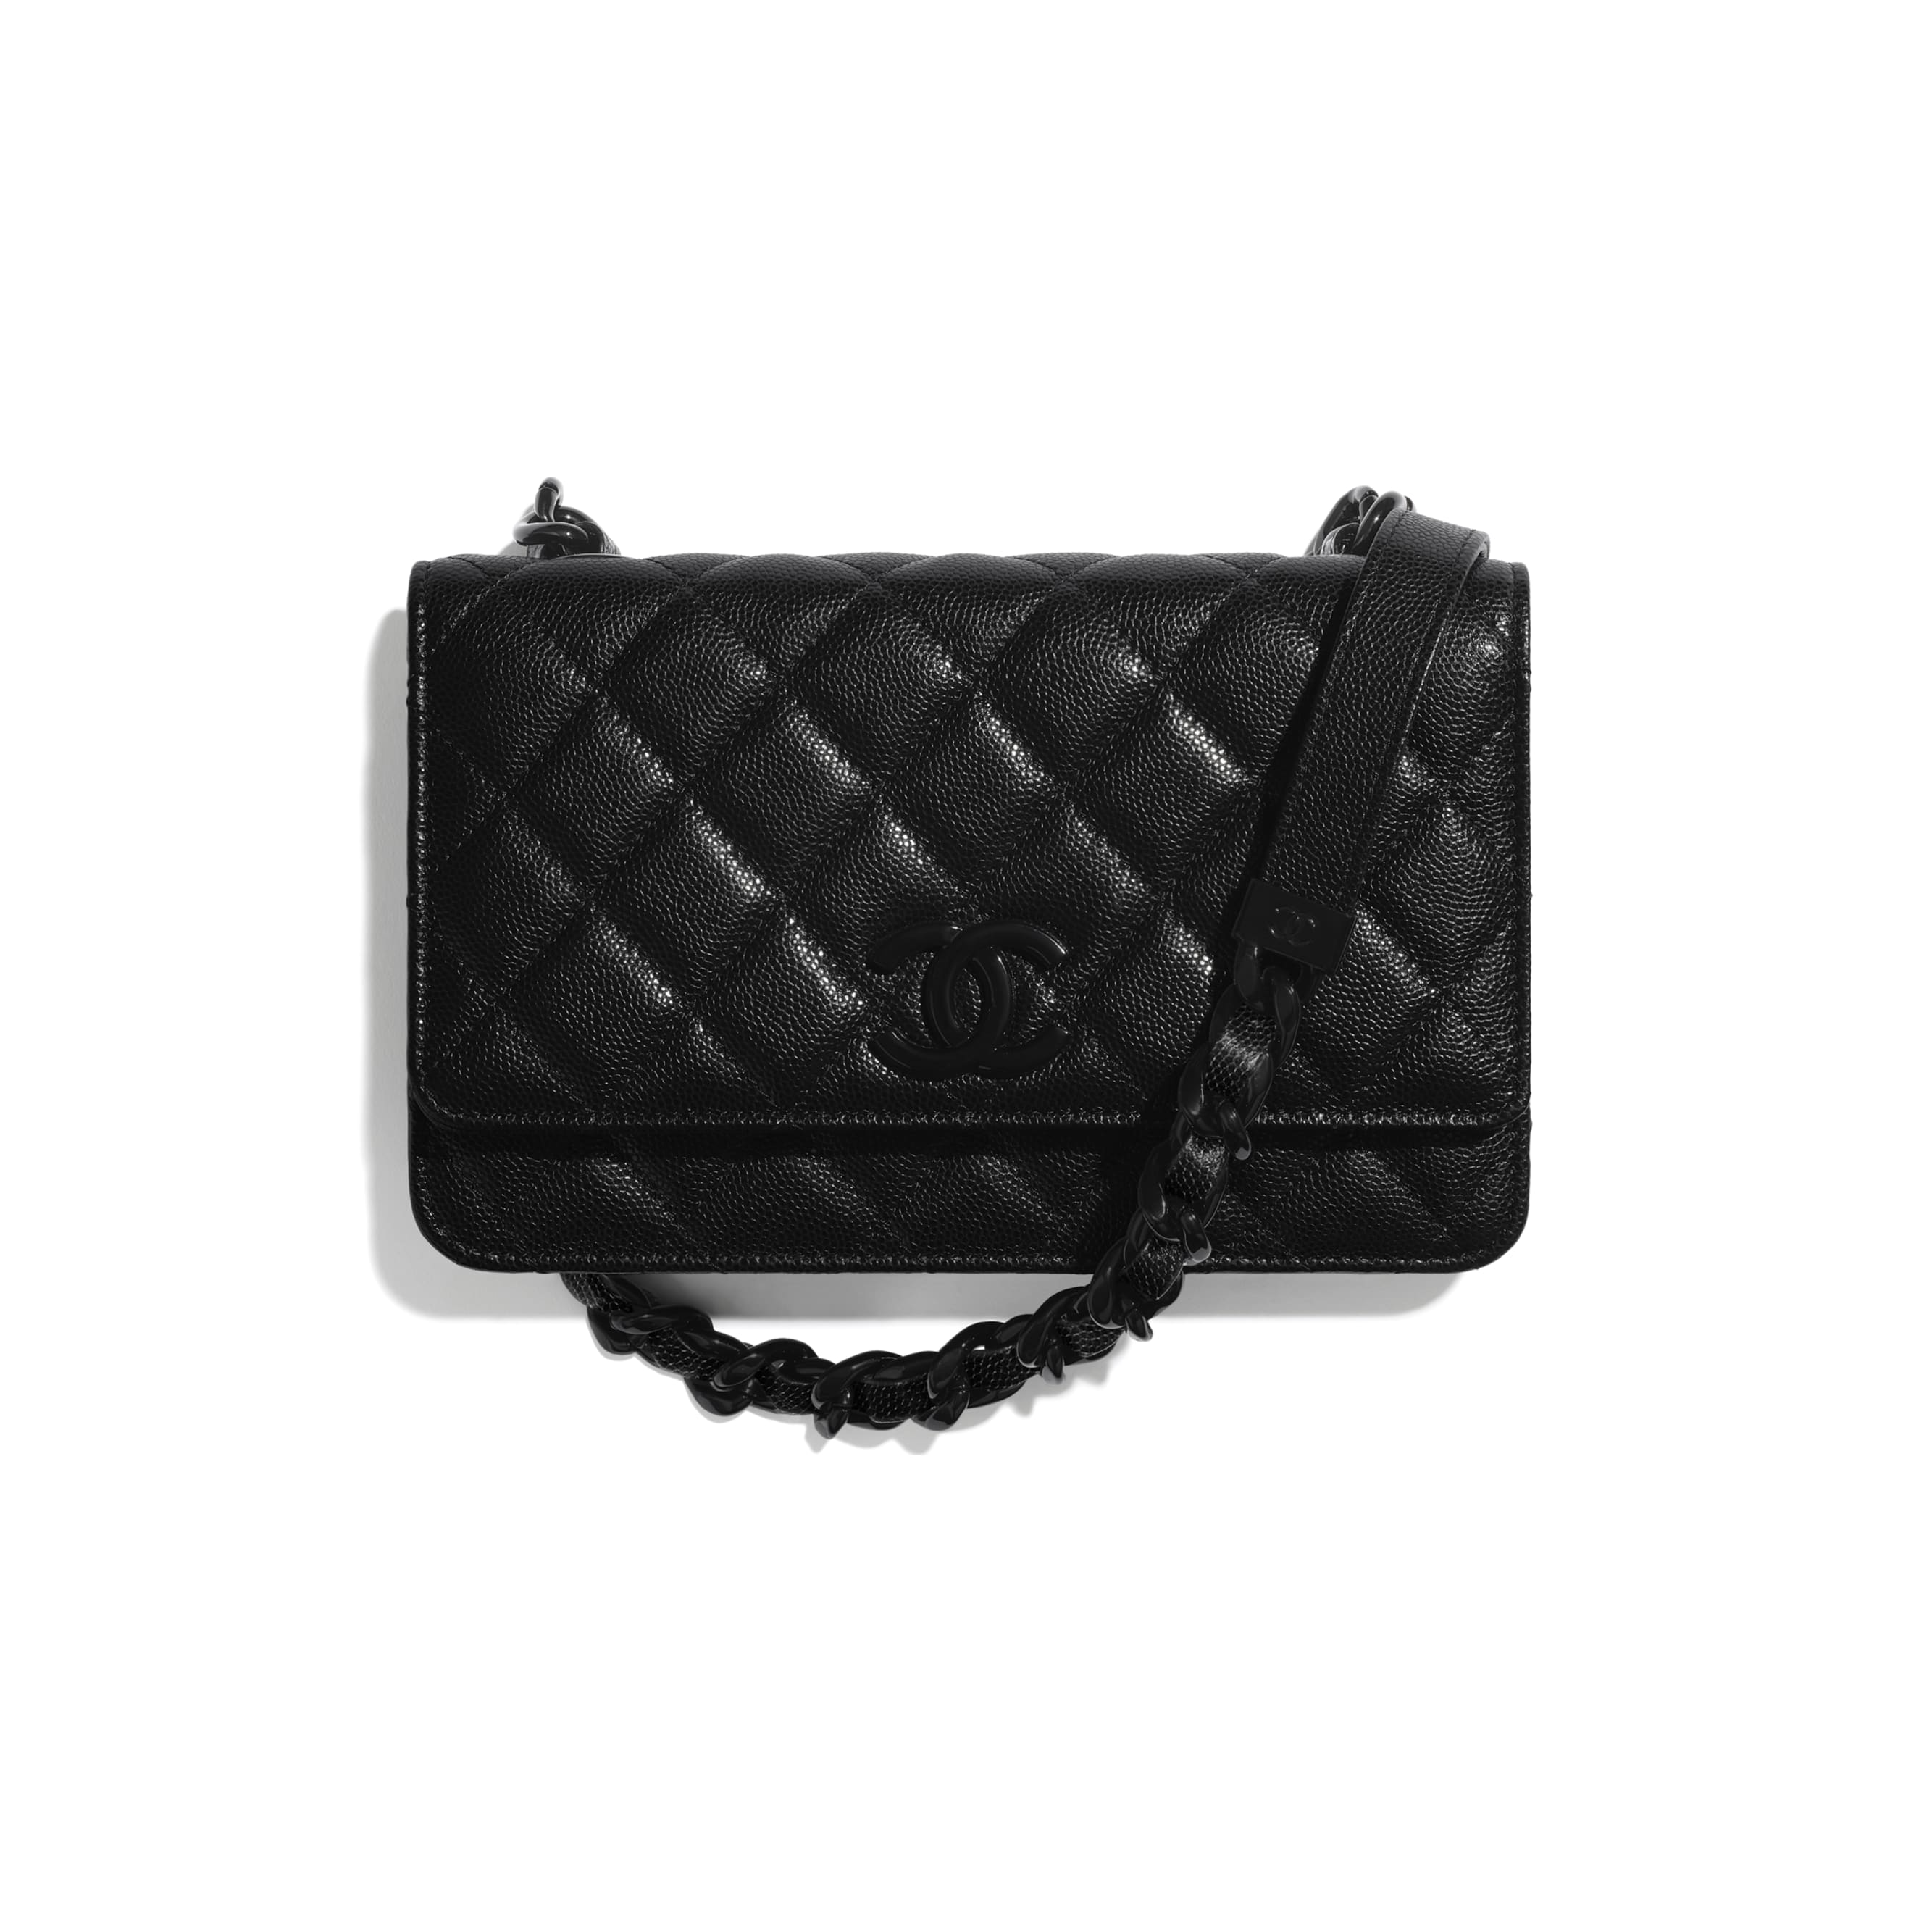 Wallet On Chain - Black - Grained Calfskin & Lacquered Metal - CHANEL - Default view - see standard sized version